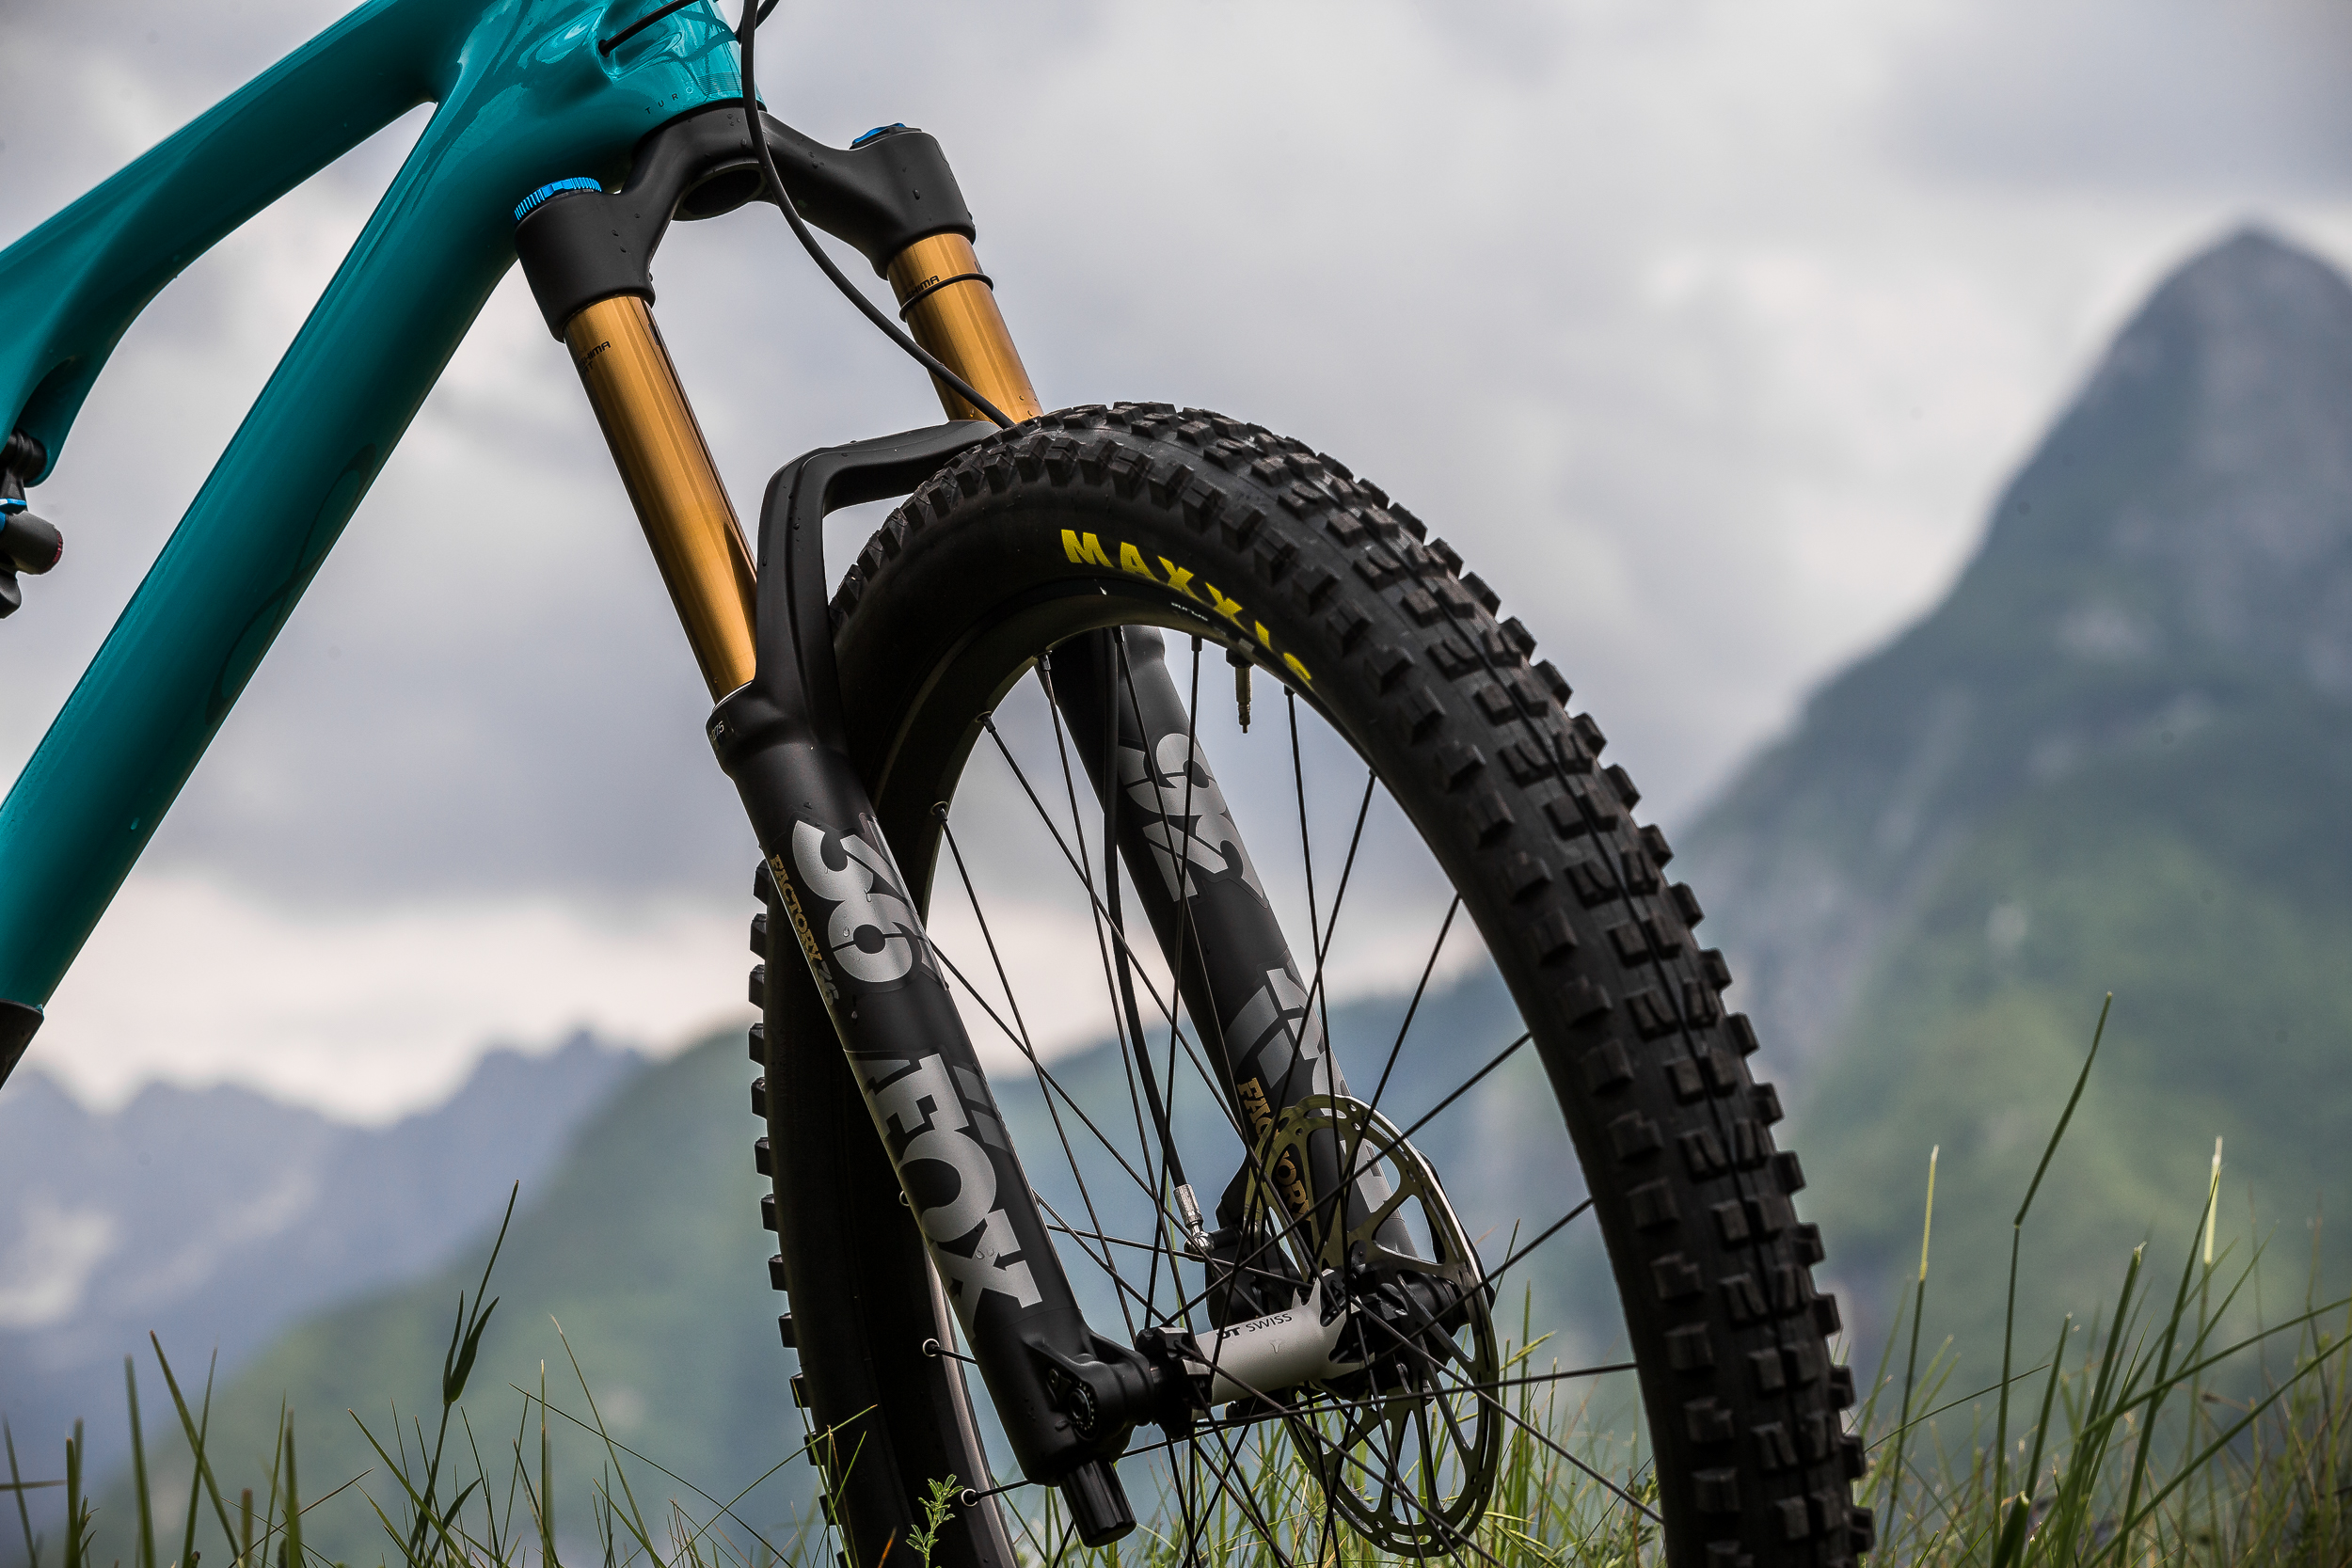 Girthy 2.6 Maxxis tires front and rear reveal the intentions of this highly capable trail bike.